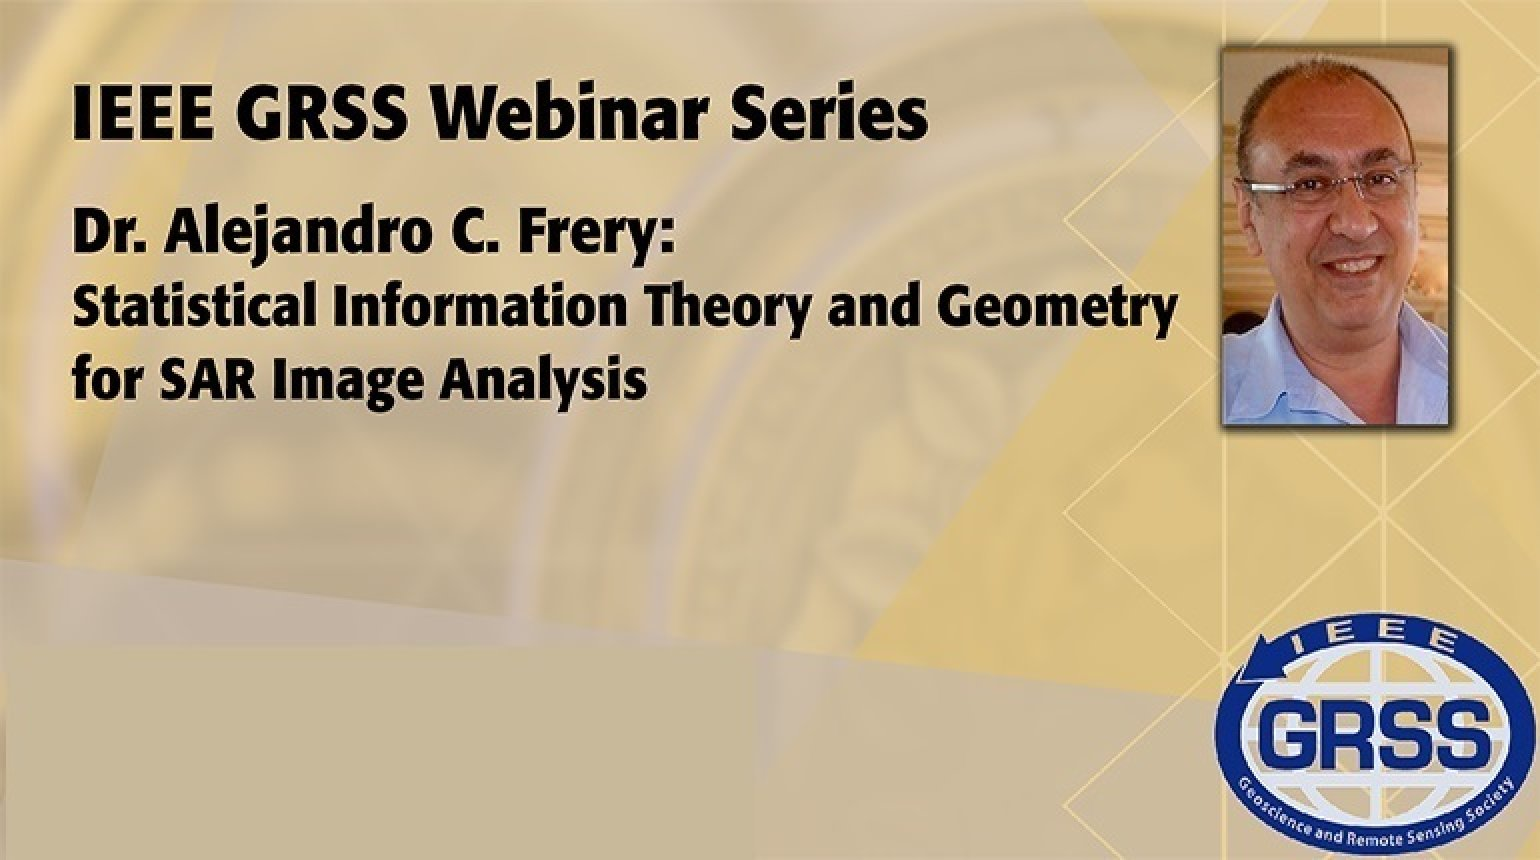 Statistical Information Theory and Geometry of SAR Image Analysis